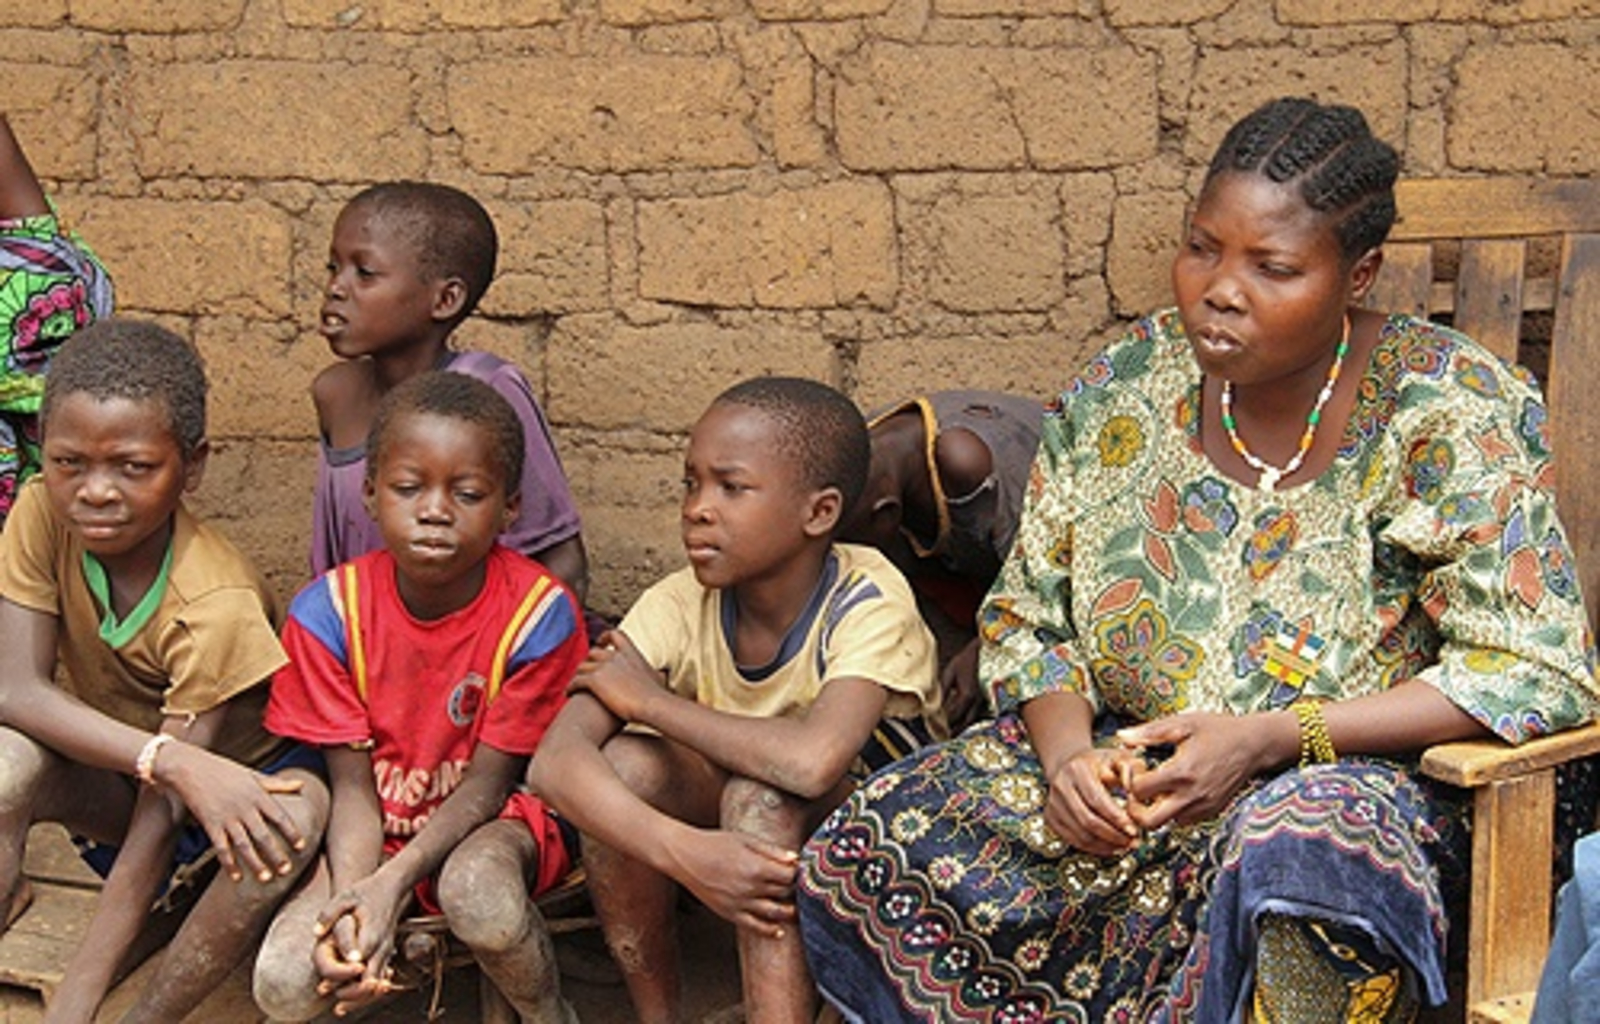 Displaced_persons_in_the_Central_African_Republic_received_aid_from_CRS_in_May_2014_Credit_Kim_Pozniak_Catholic_Relief_Services_CNA_5_21_14